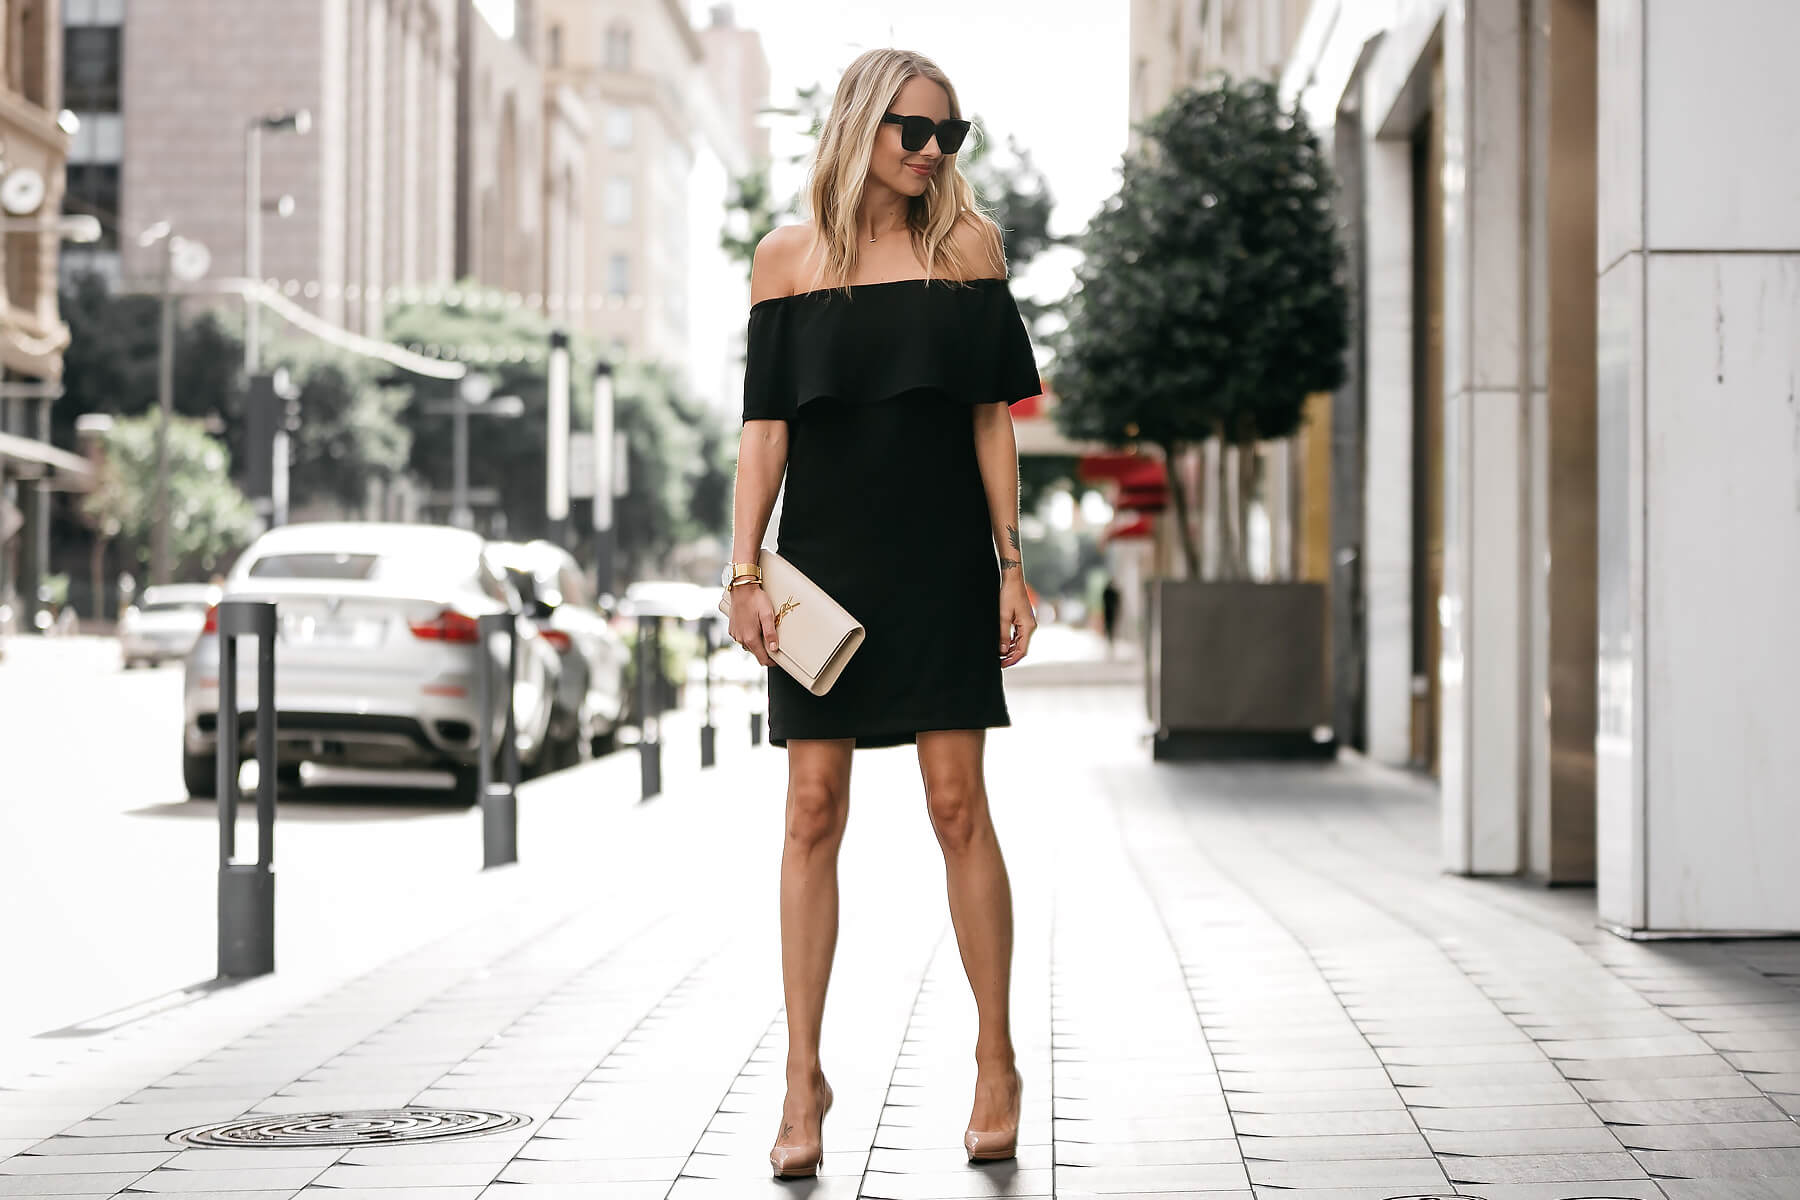 Women's Clothing Guide - Black Dress Secrets Revealed